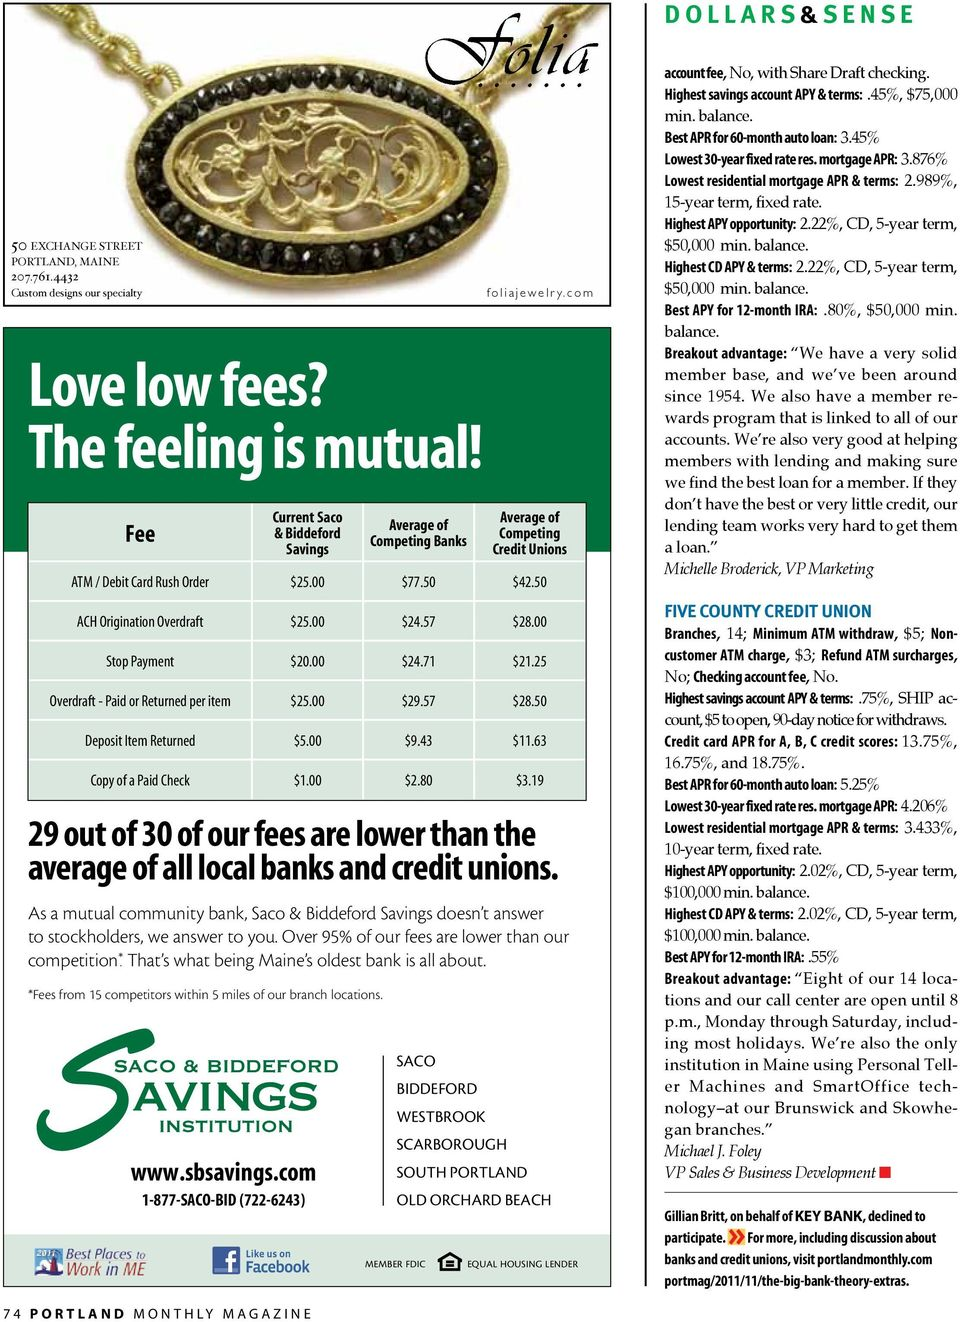 As a mutual community bank, Saco & Biddeford Savings doesn t answer to stockholders, we answer to you. Over 95% of our fees are lower than our competition *.